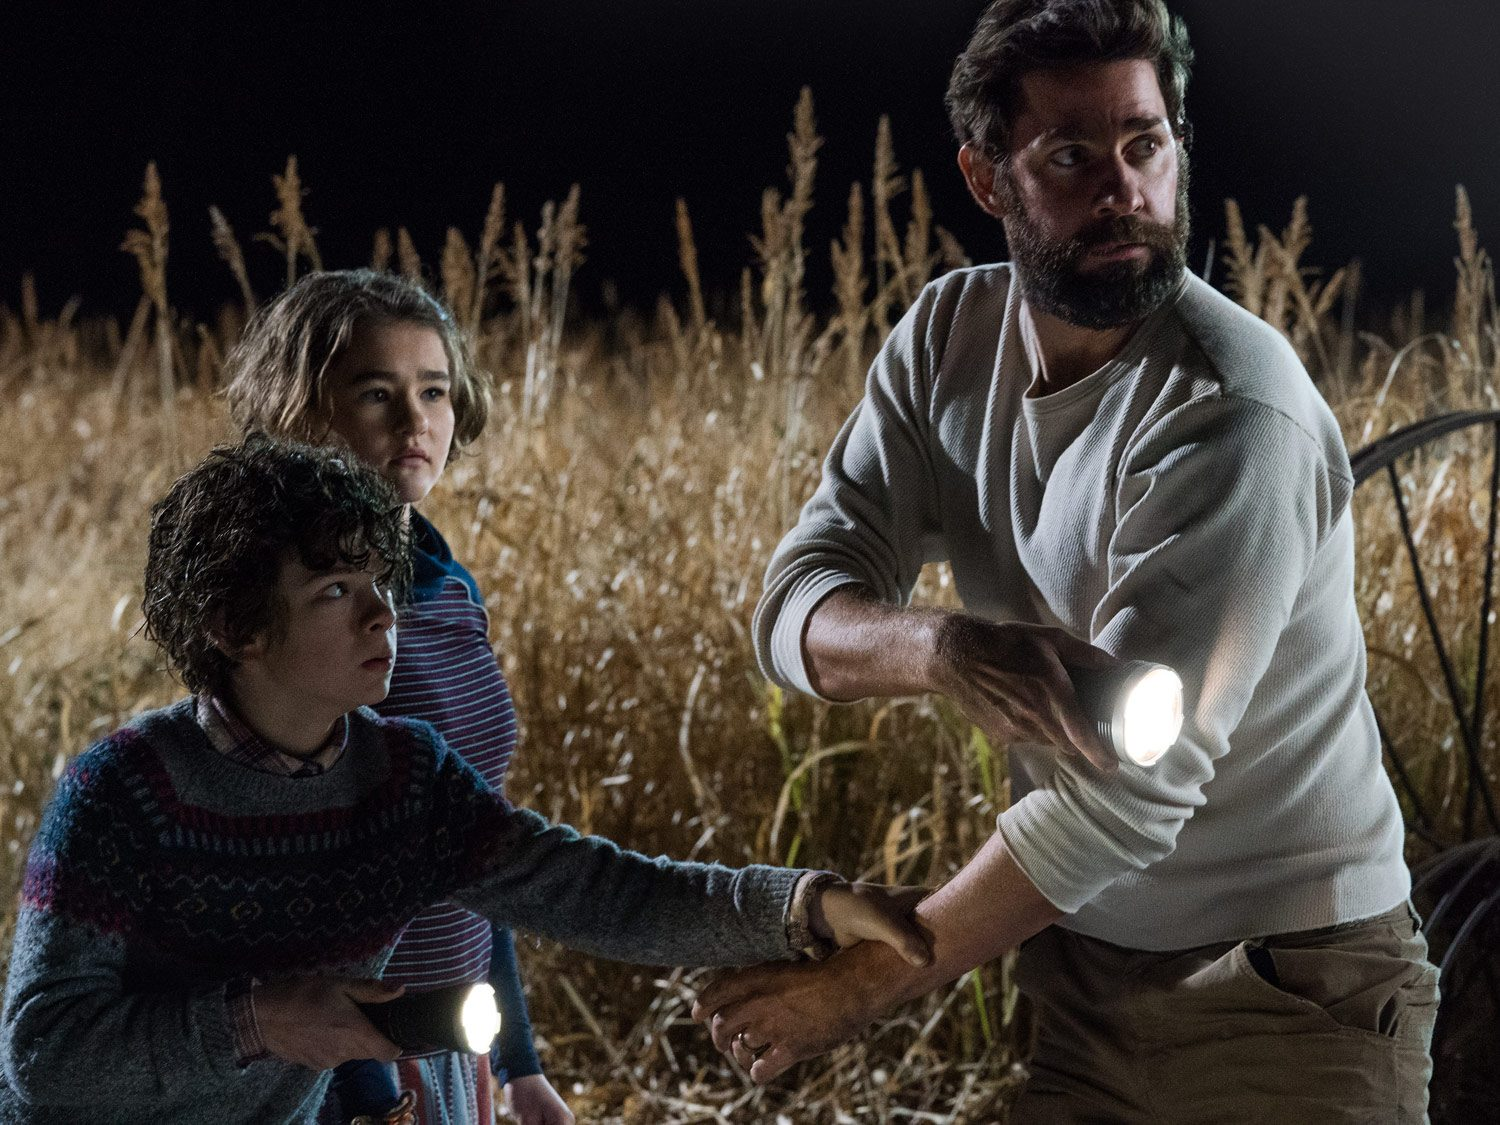 Best movies on Netflix Canada: A Quiet Place